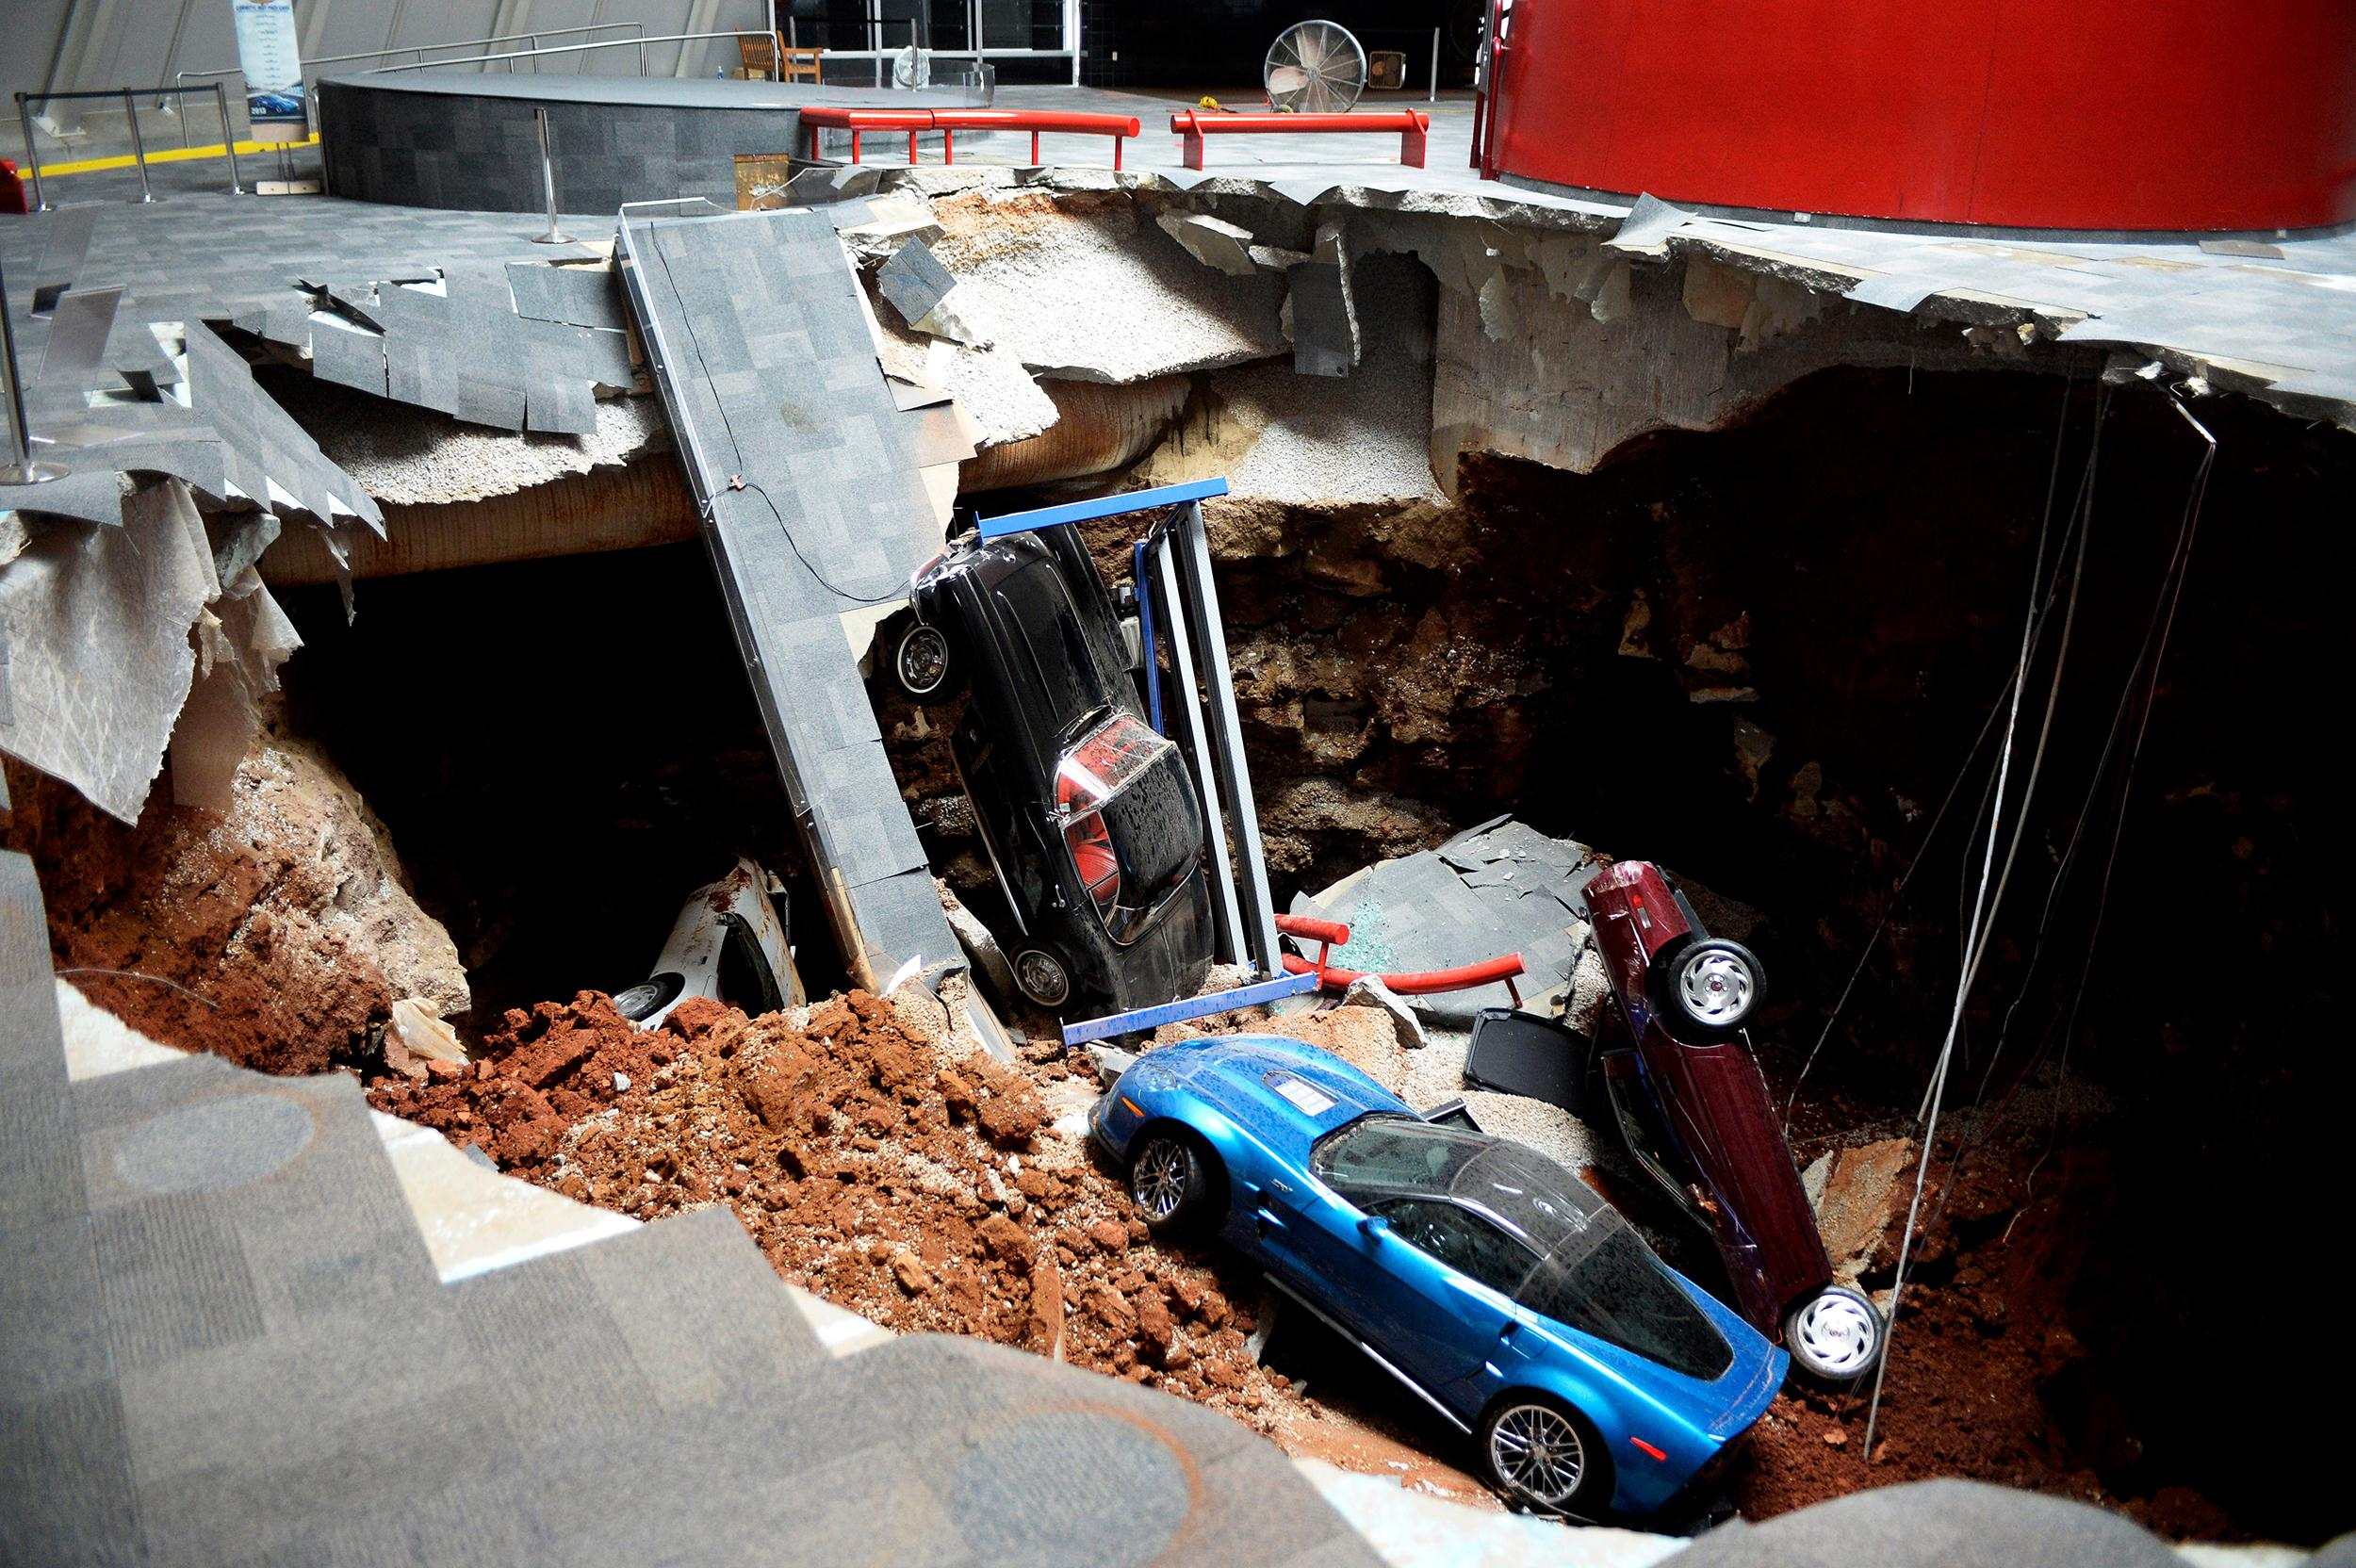 Image: A view of a sinkhole that opened up in the Skydome showroom on Feb. 12, at the National Corvette Museum in Bowling Green, Ky.